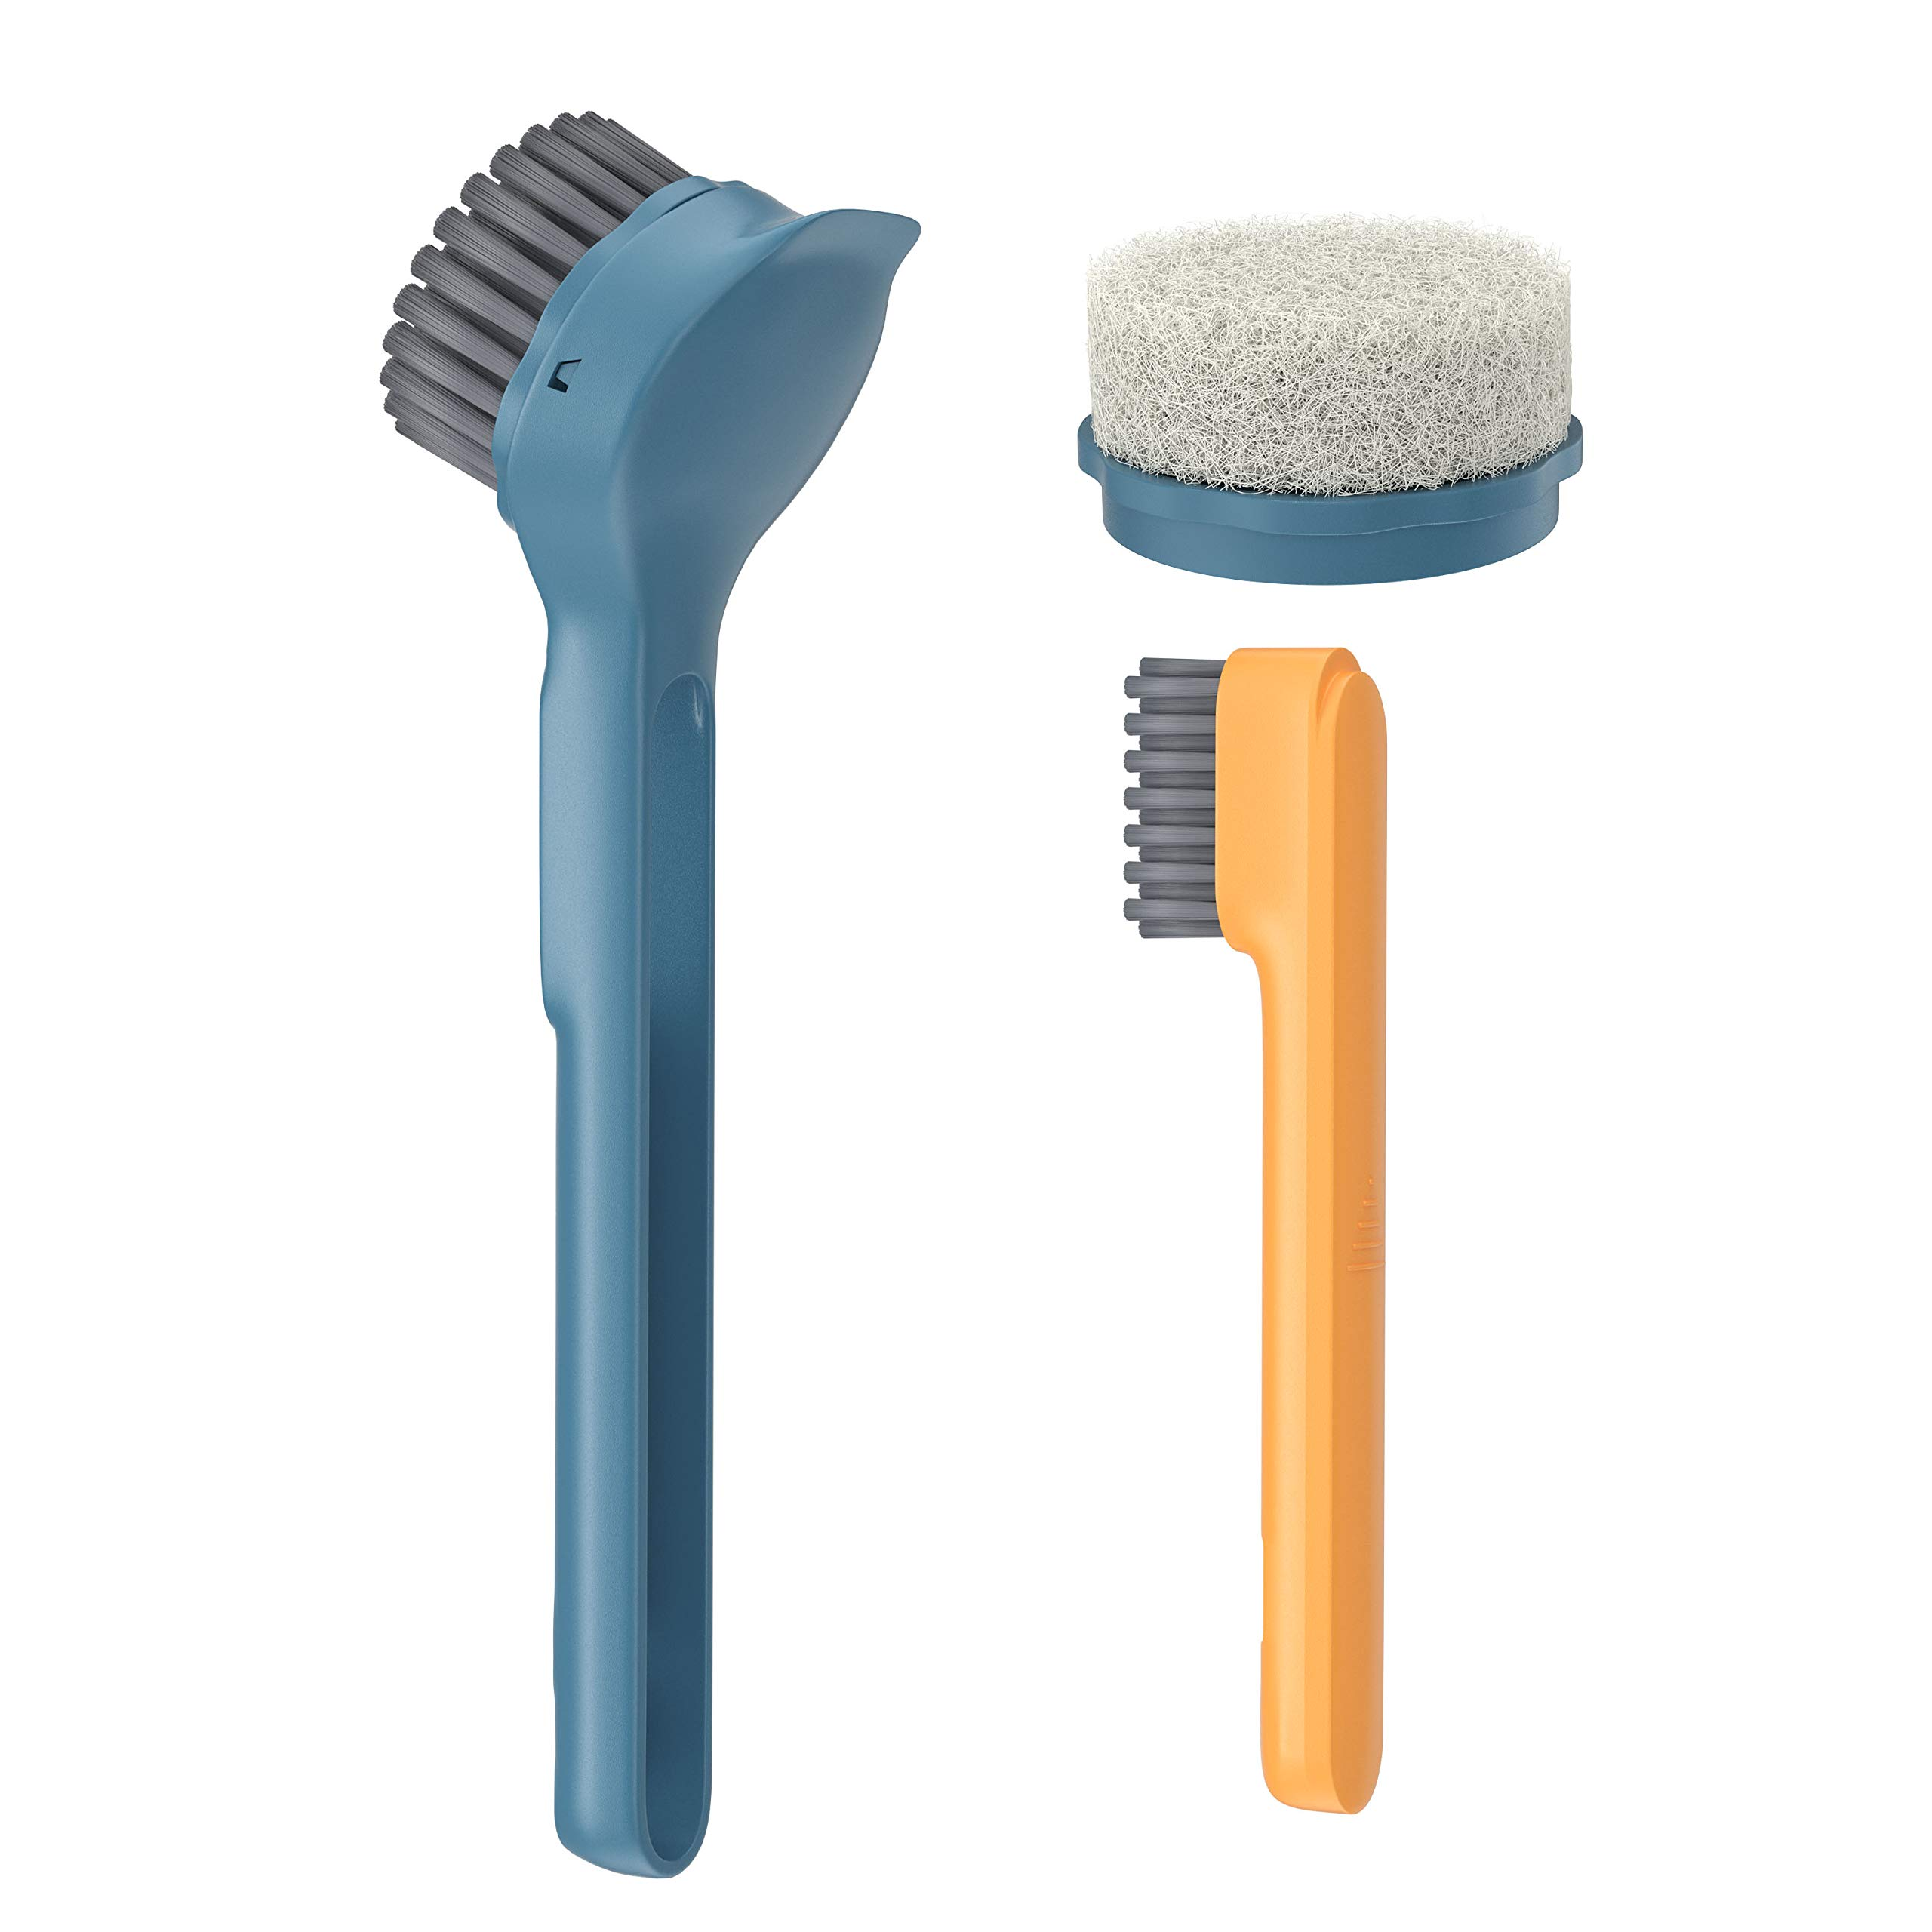 Kitchen Scrub Brush Sink Bathroom Brushes with Scraper Tip Comfortable Grip Bristles for Pot Pan Cast Iron Skillet Dishes Cleaning (Navy blue)